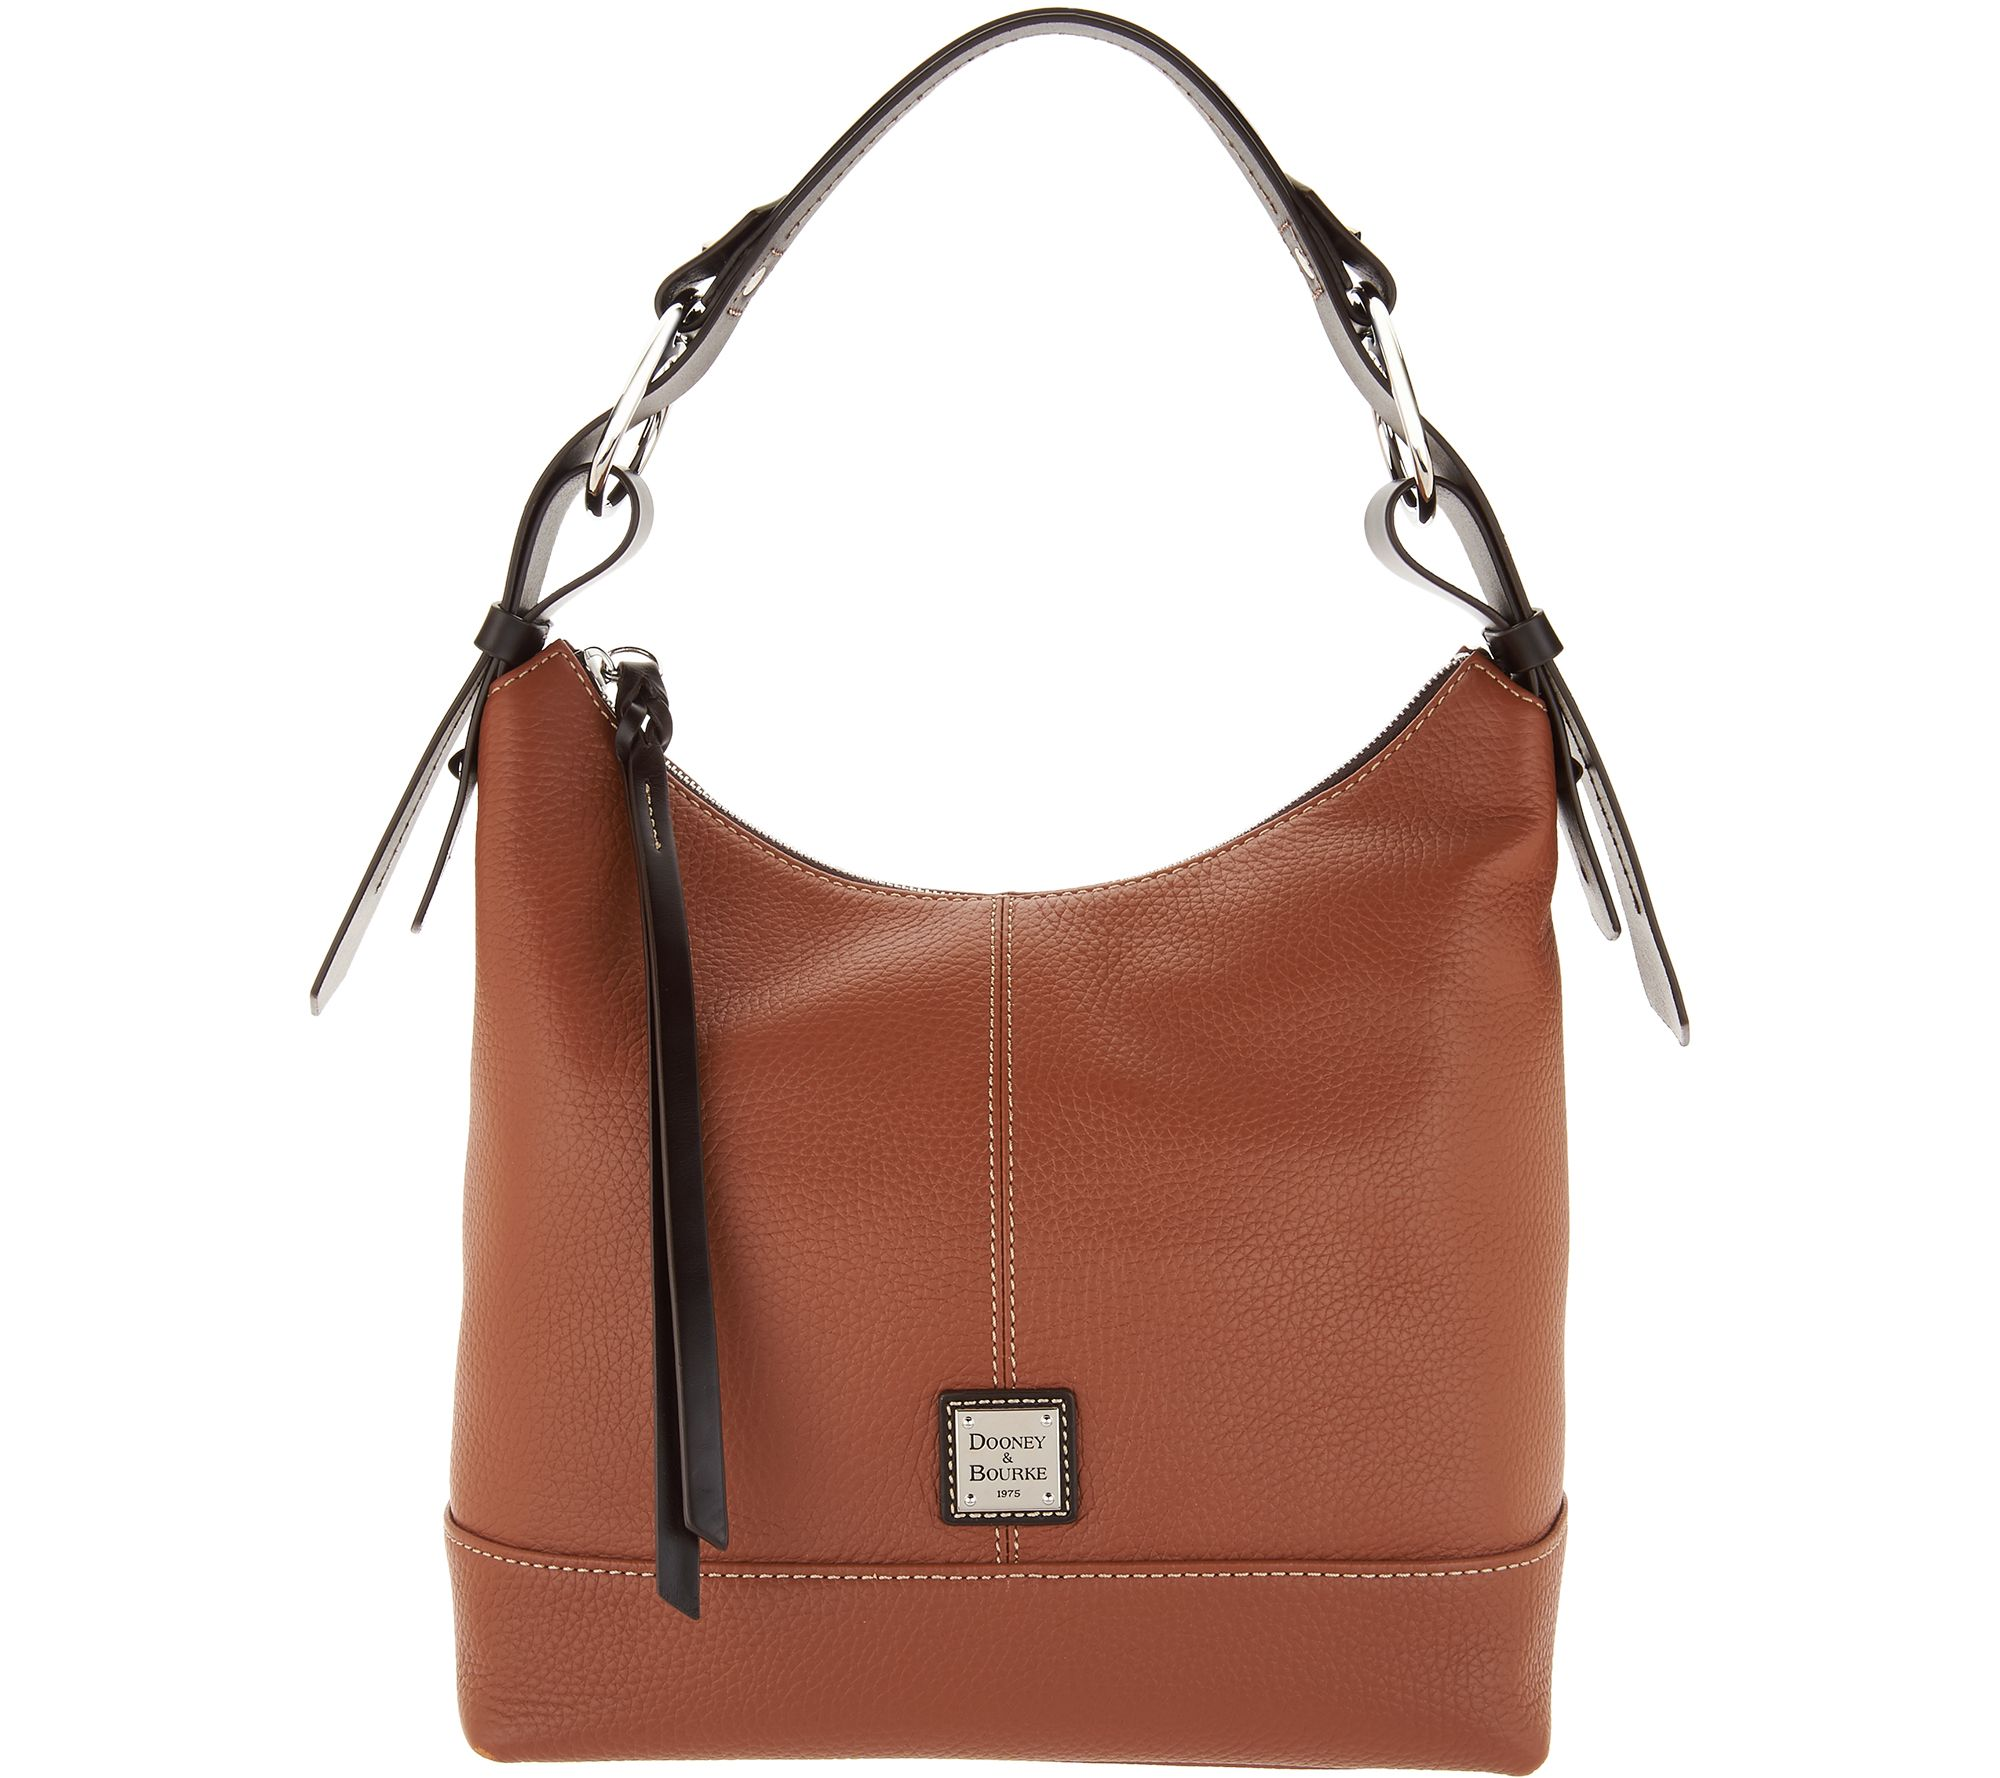 d837c36c7c Dooney   Bourke Pebble Leather Hobo Handbag- Gracie - Page 1 — QVC.com